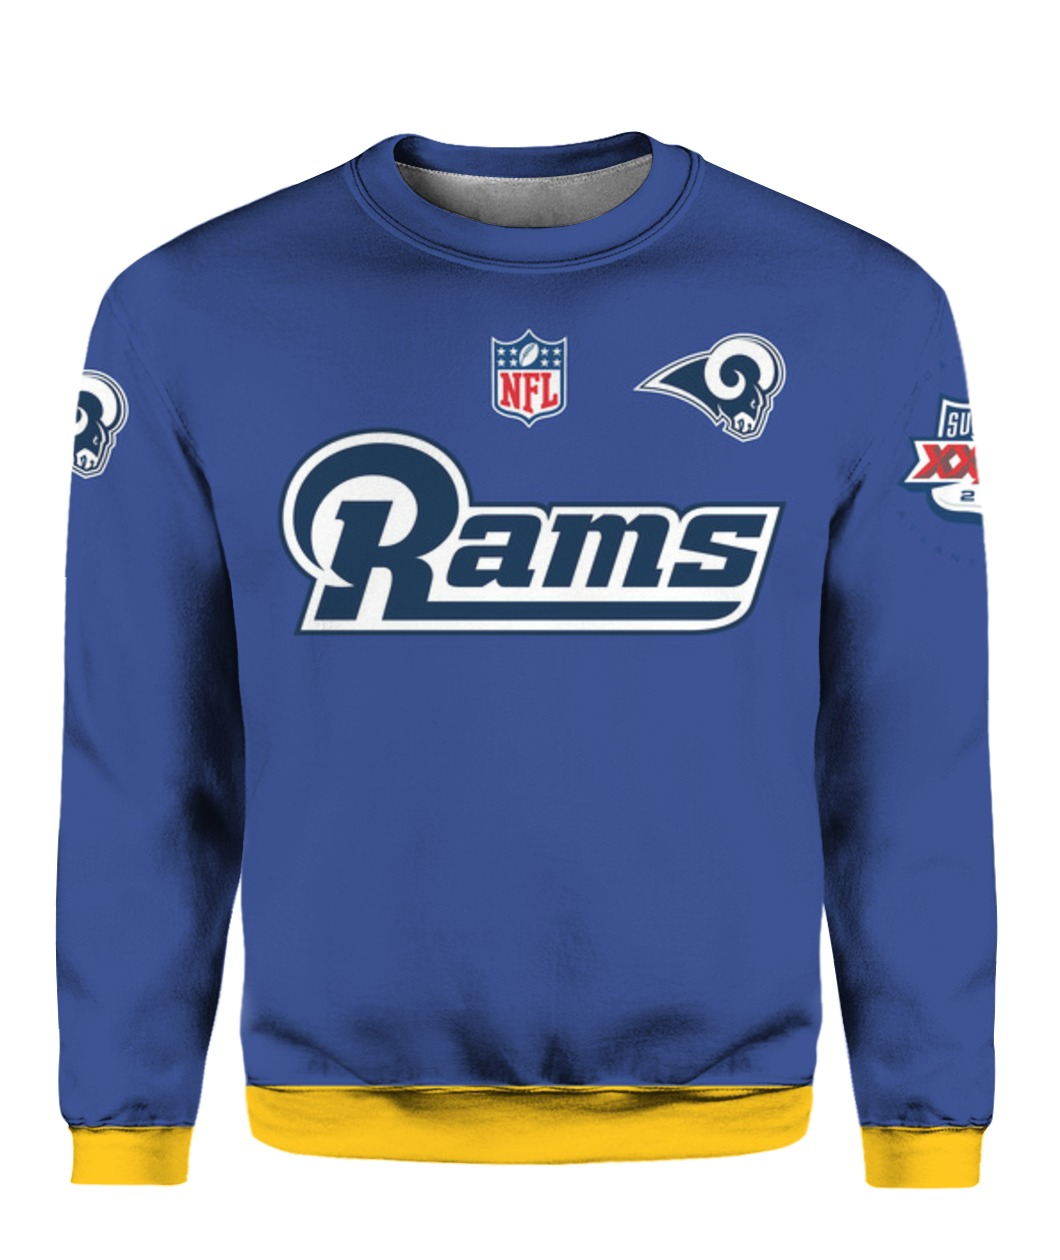 Stand for the flag kneel for the cross los angeles rams all over print sweatshirt